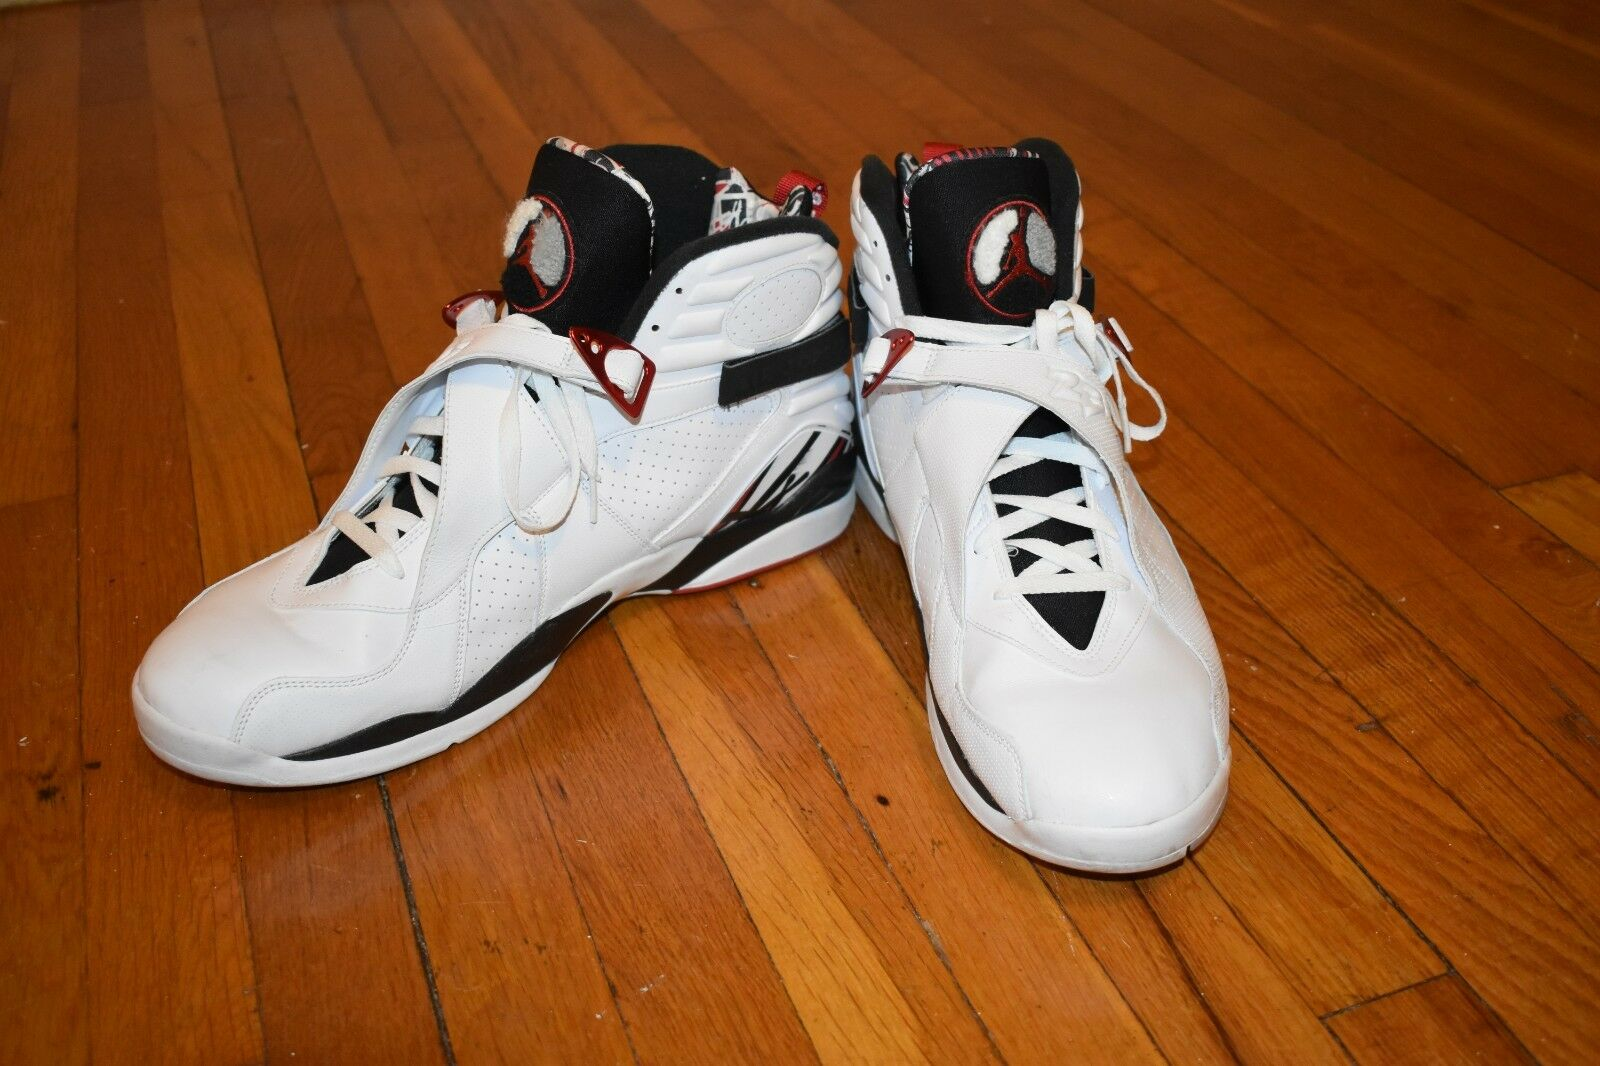 Men's Air Jordan's 8 Bunnies - Authentic Size 17, New Without Box, Worn Once